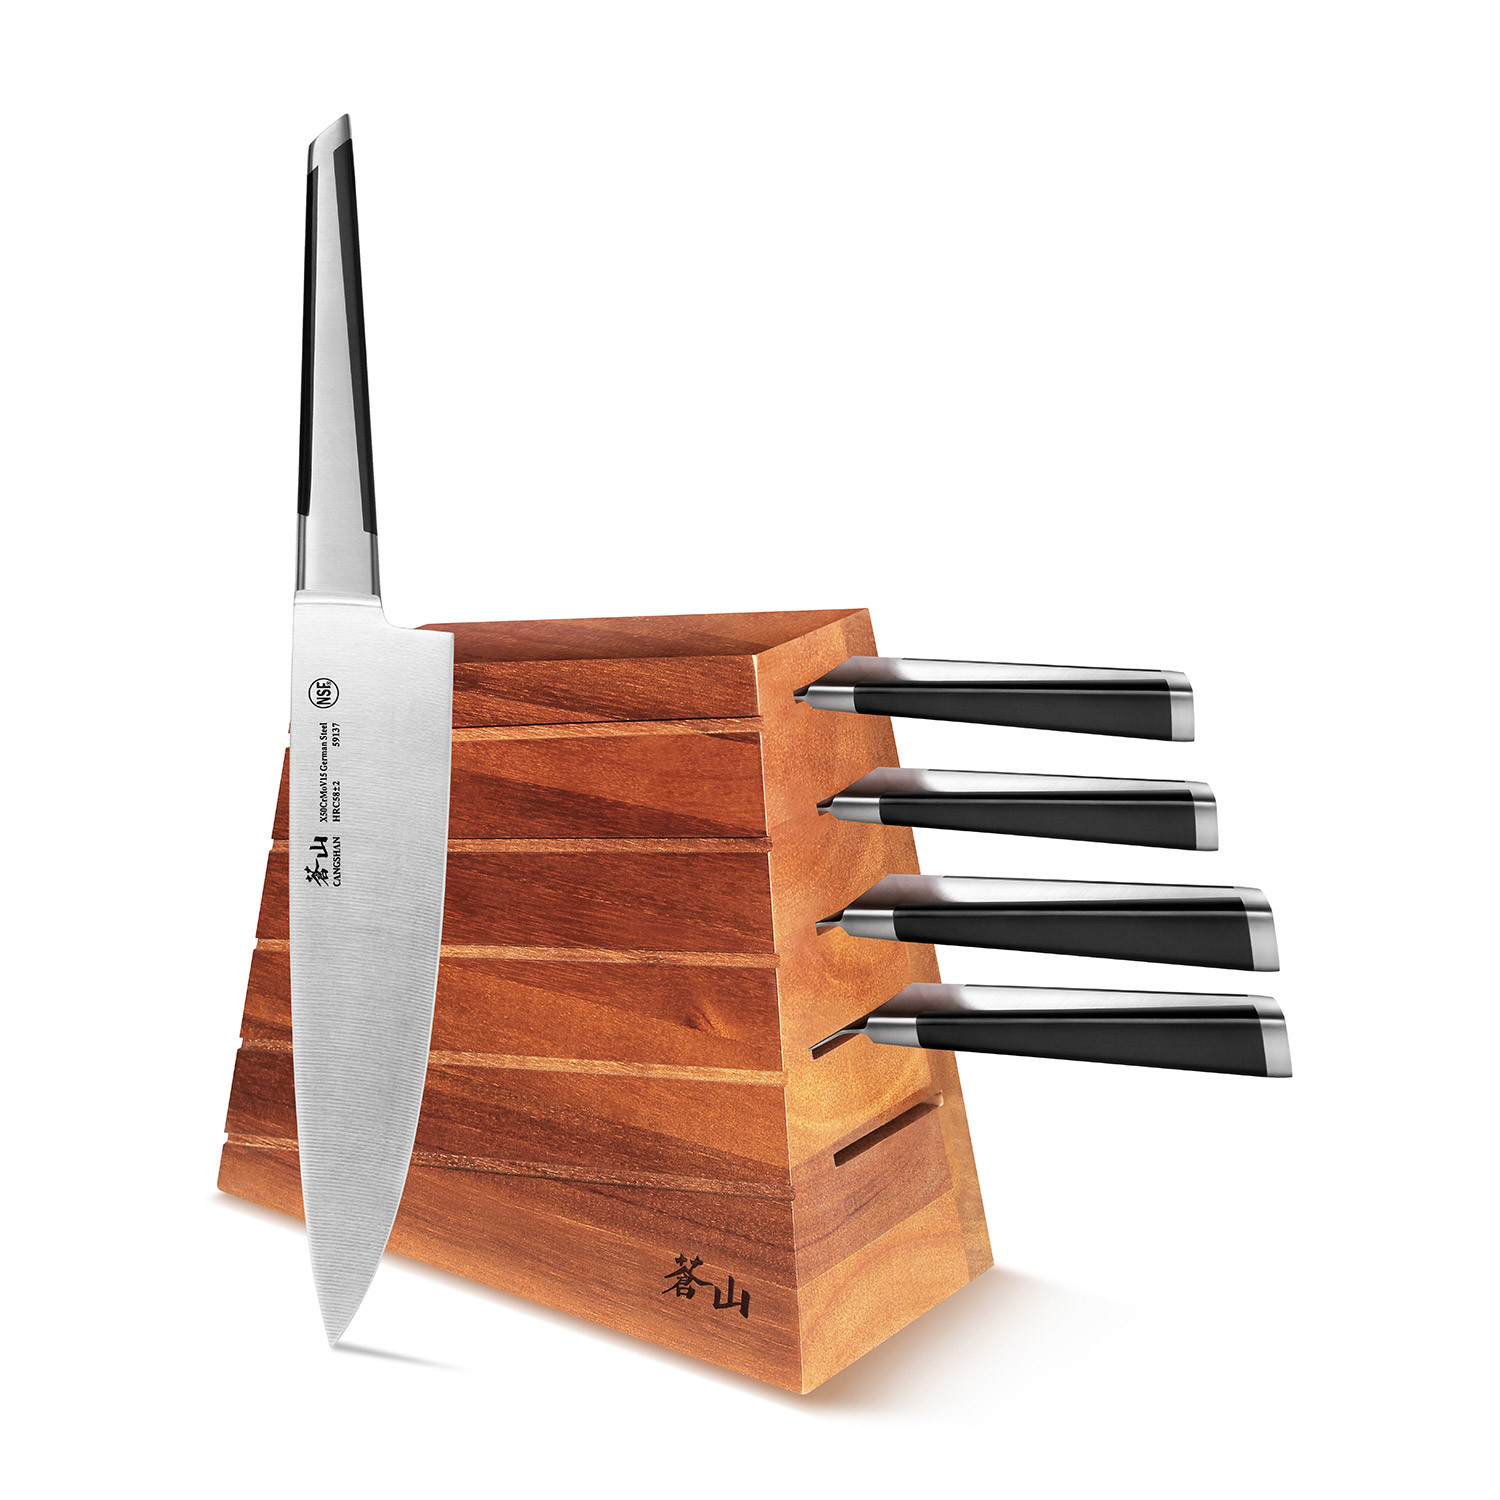 Cool Knife Block Sets X Series 6 Piece Knife Block Set Cangshan Touch Of Modern